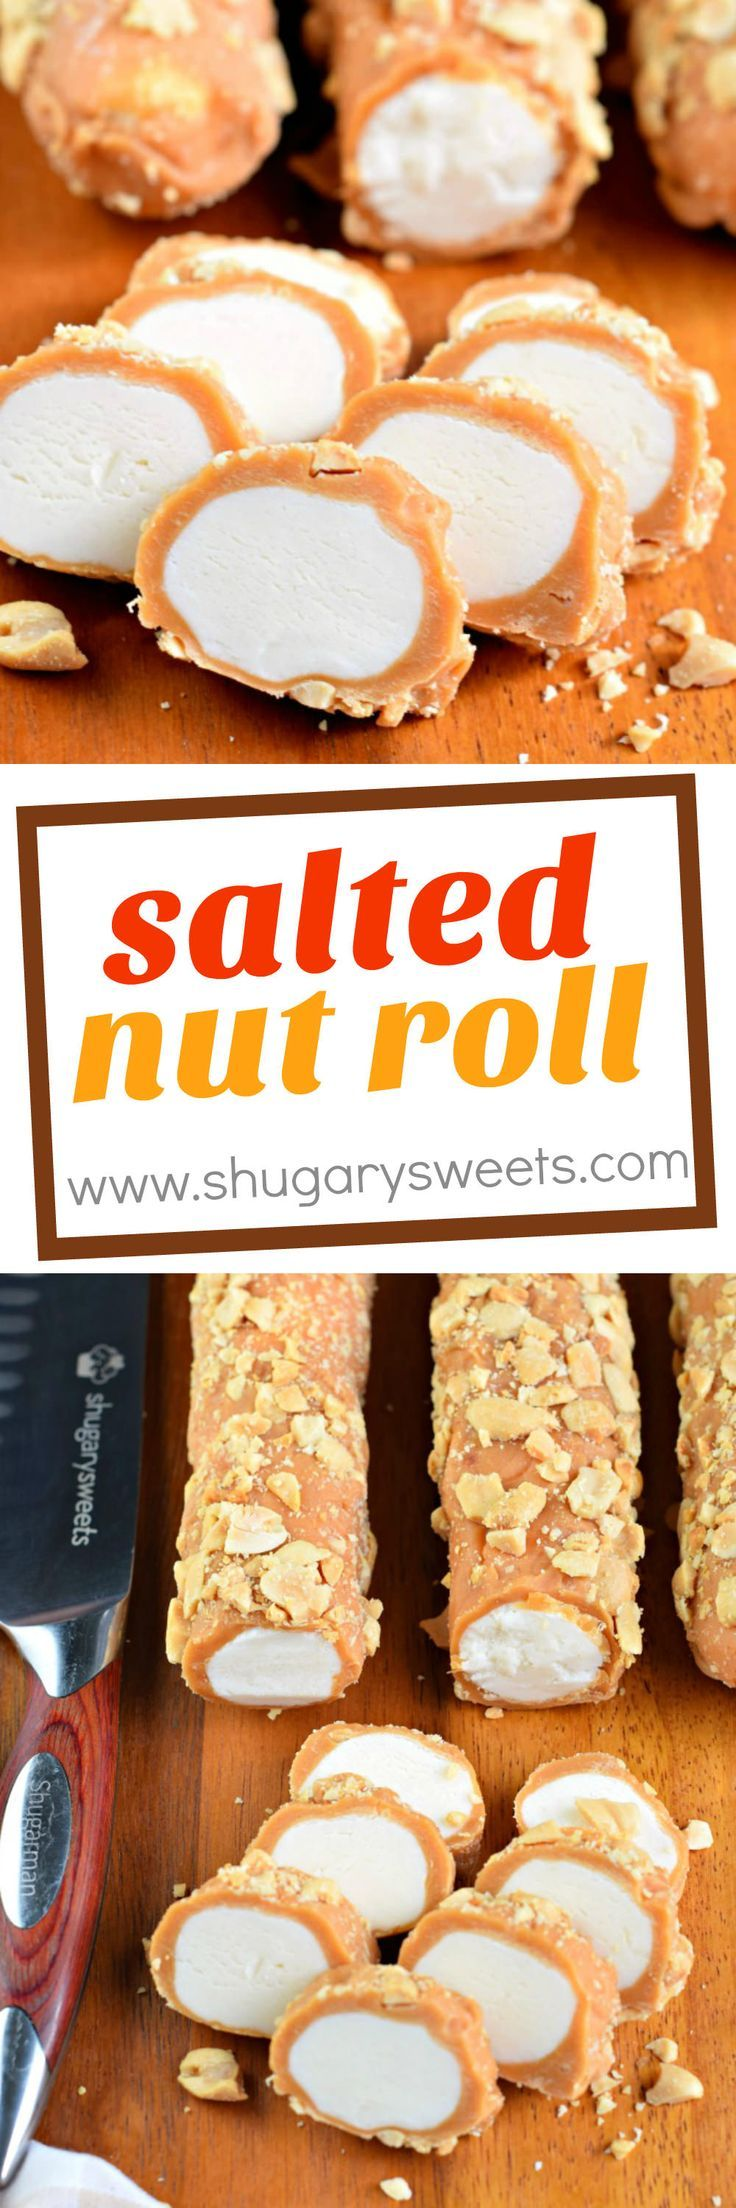 how to make nuts bar at home